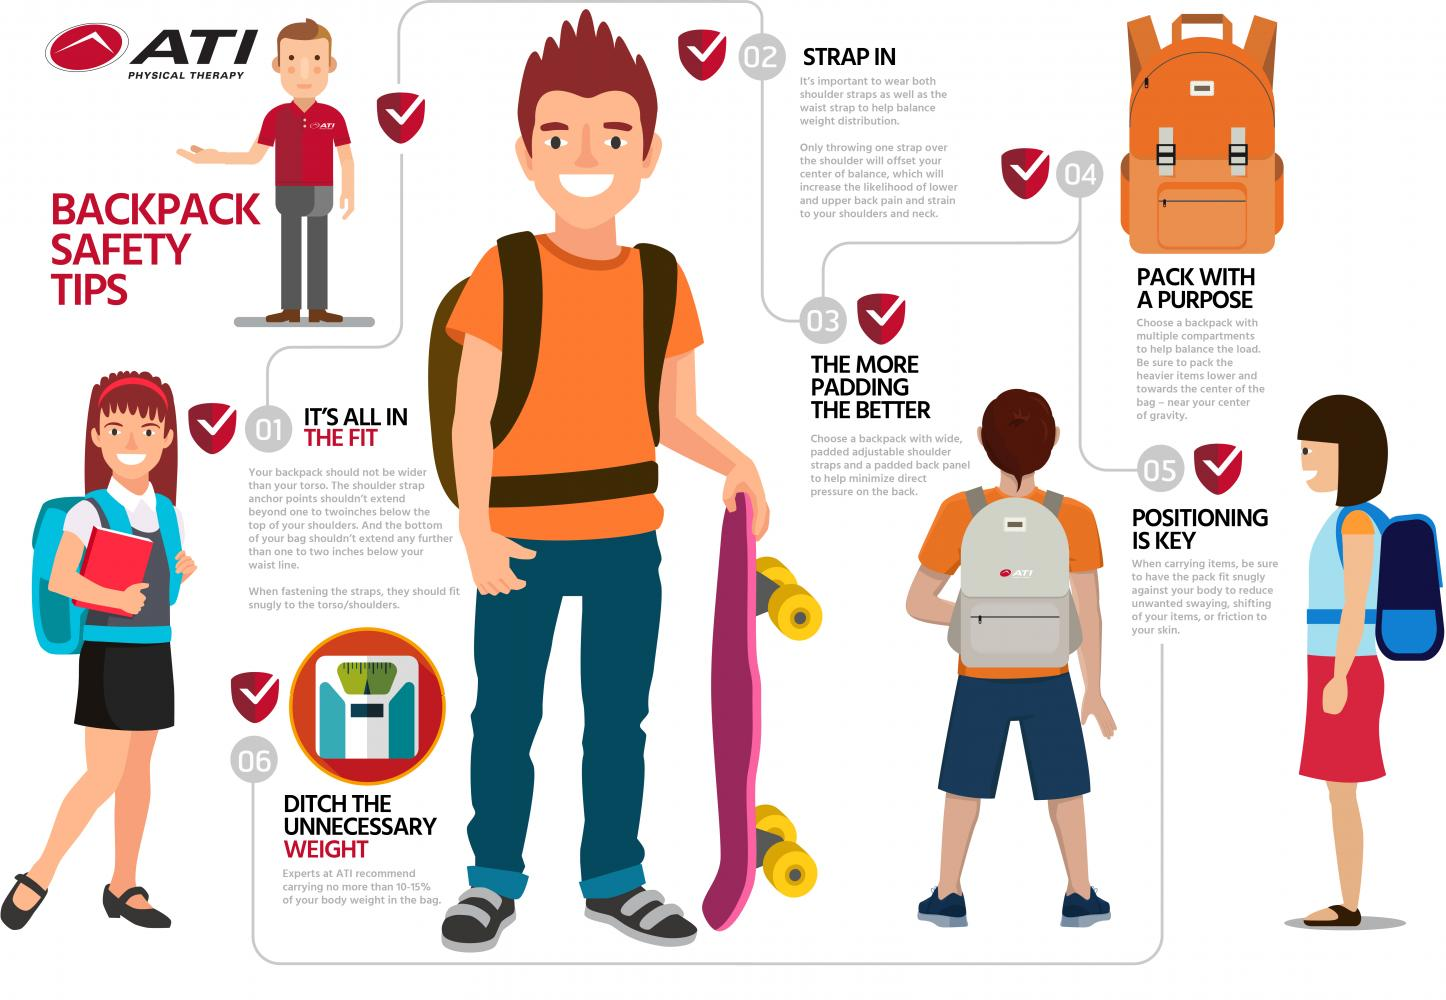 Lighten the Load on your Body with Backpack Safety Tips ...